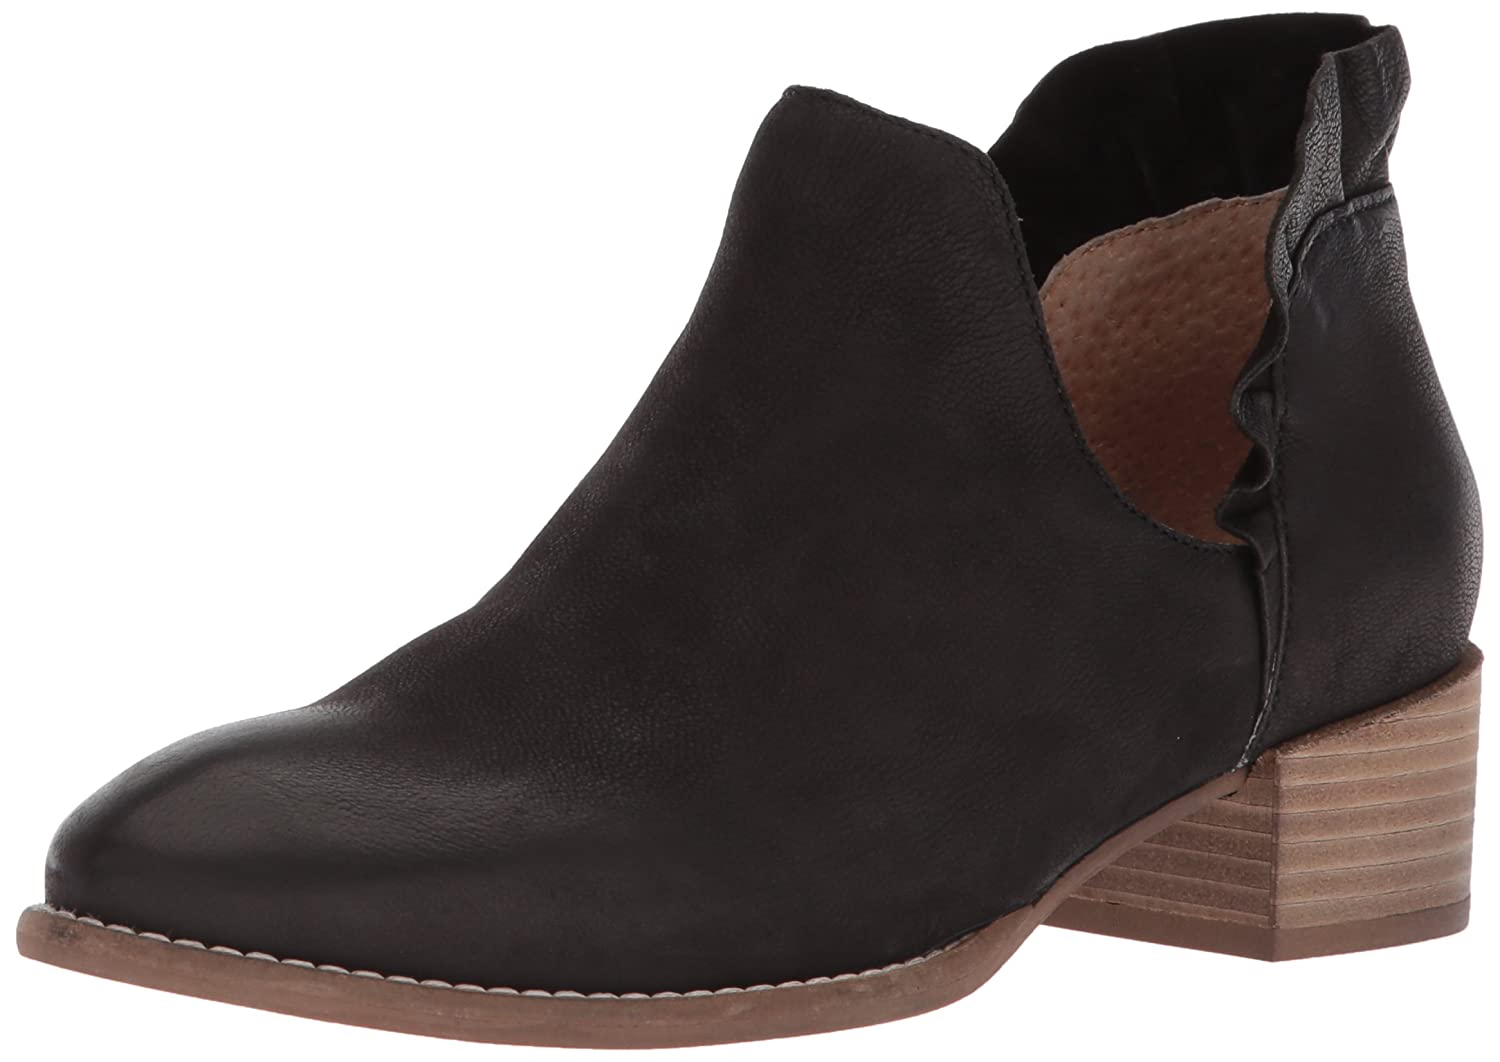 Seychelles Women's Renowned Ankle Boot B075RFFSVY 7 B(M) US|Black